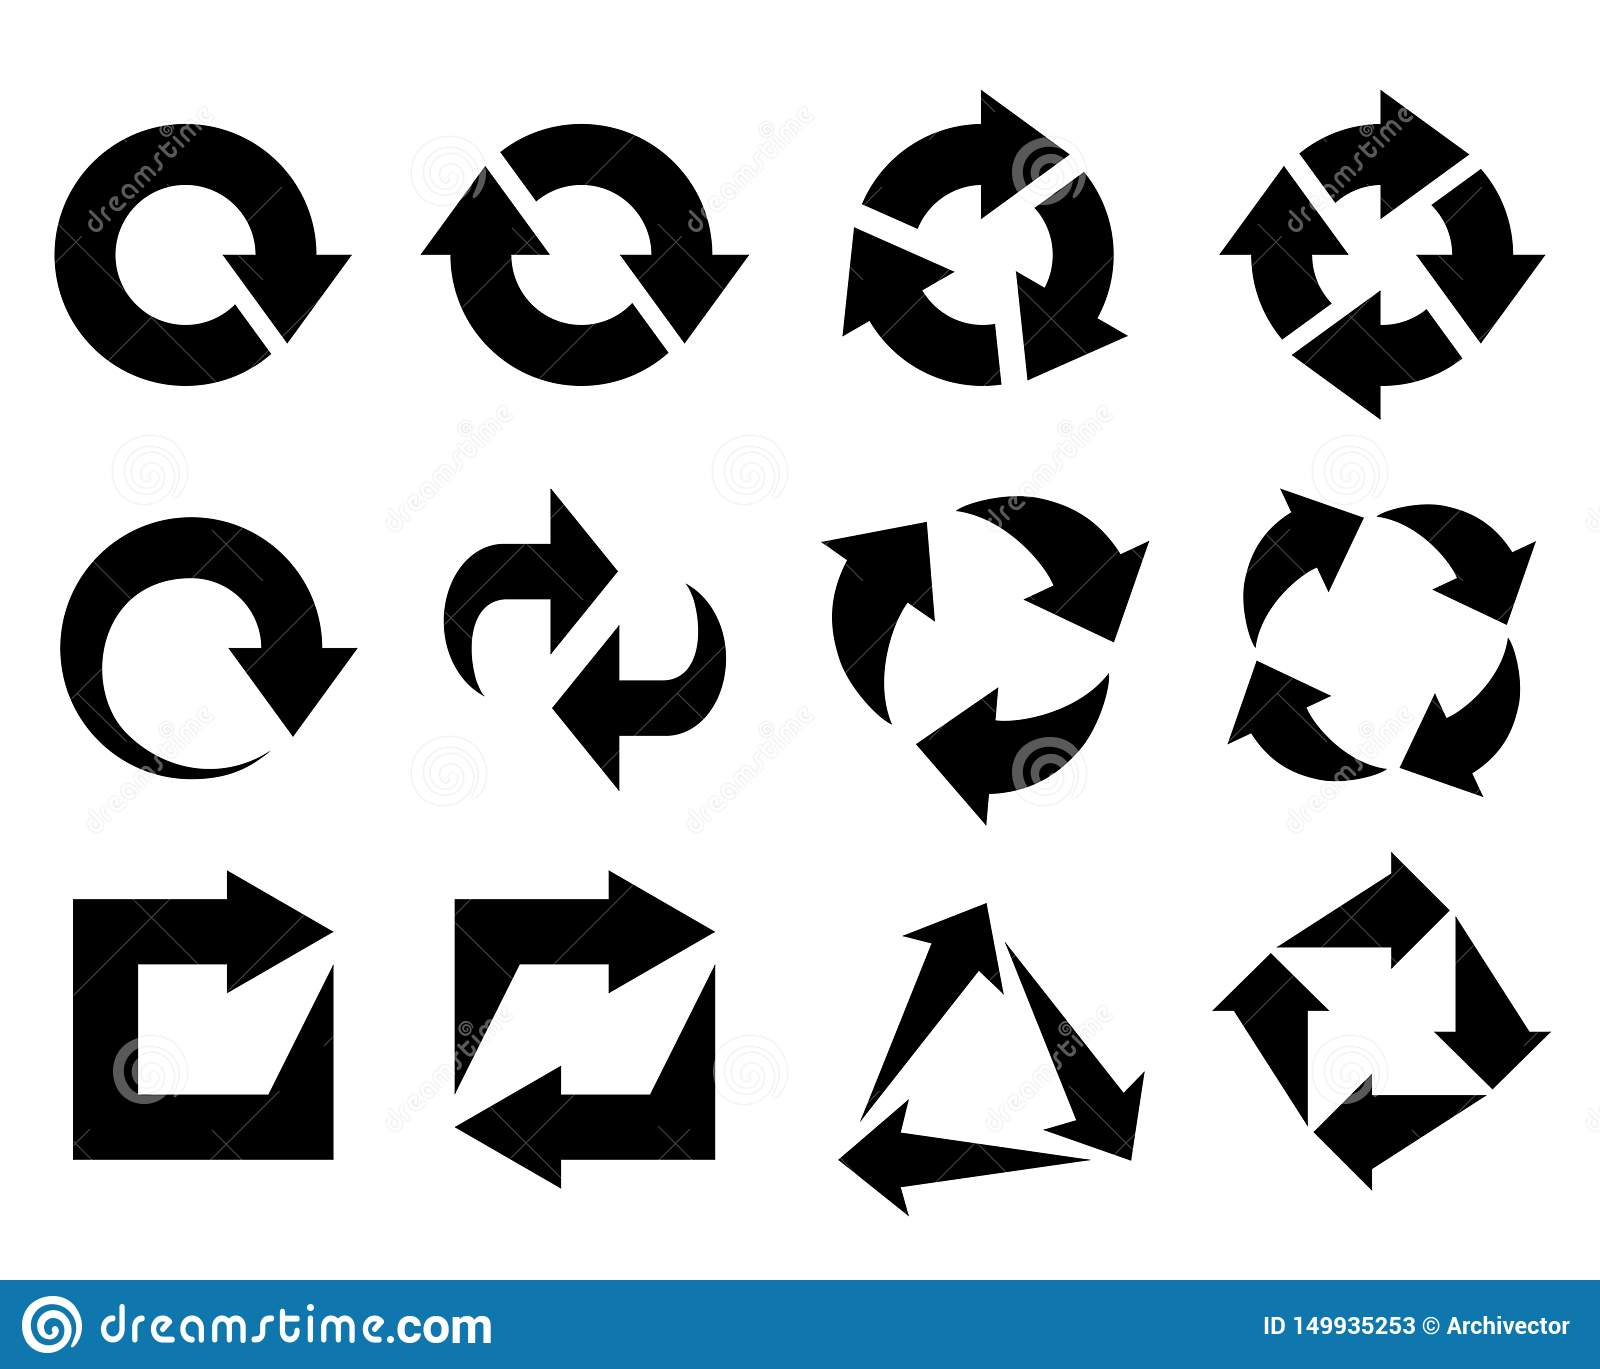 Arrows as symbols recycled element